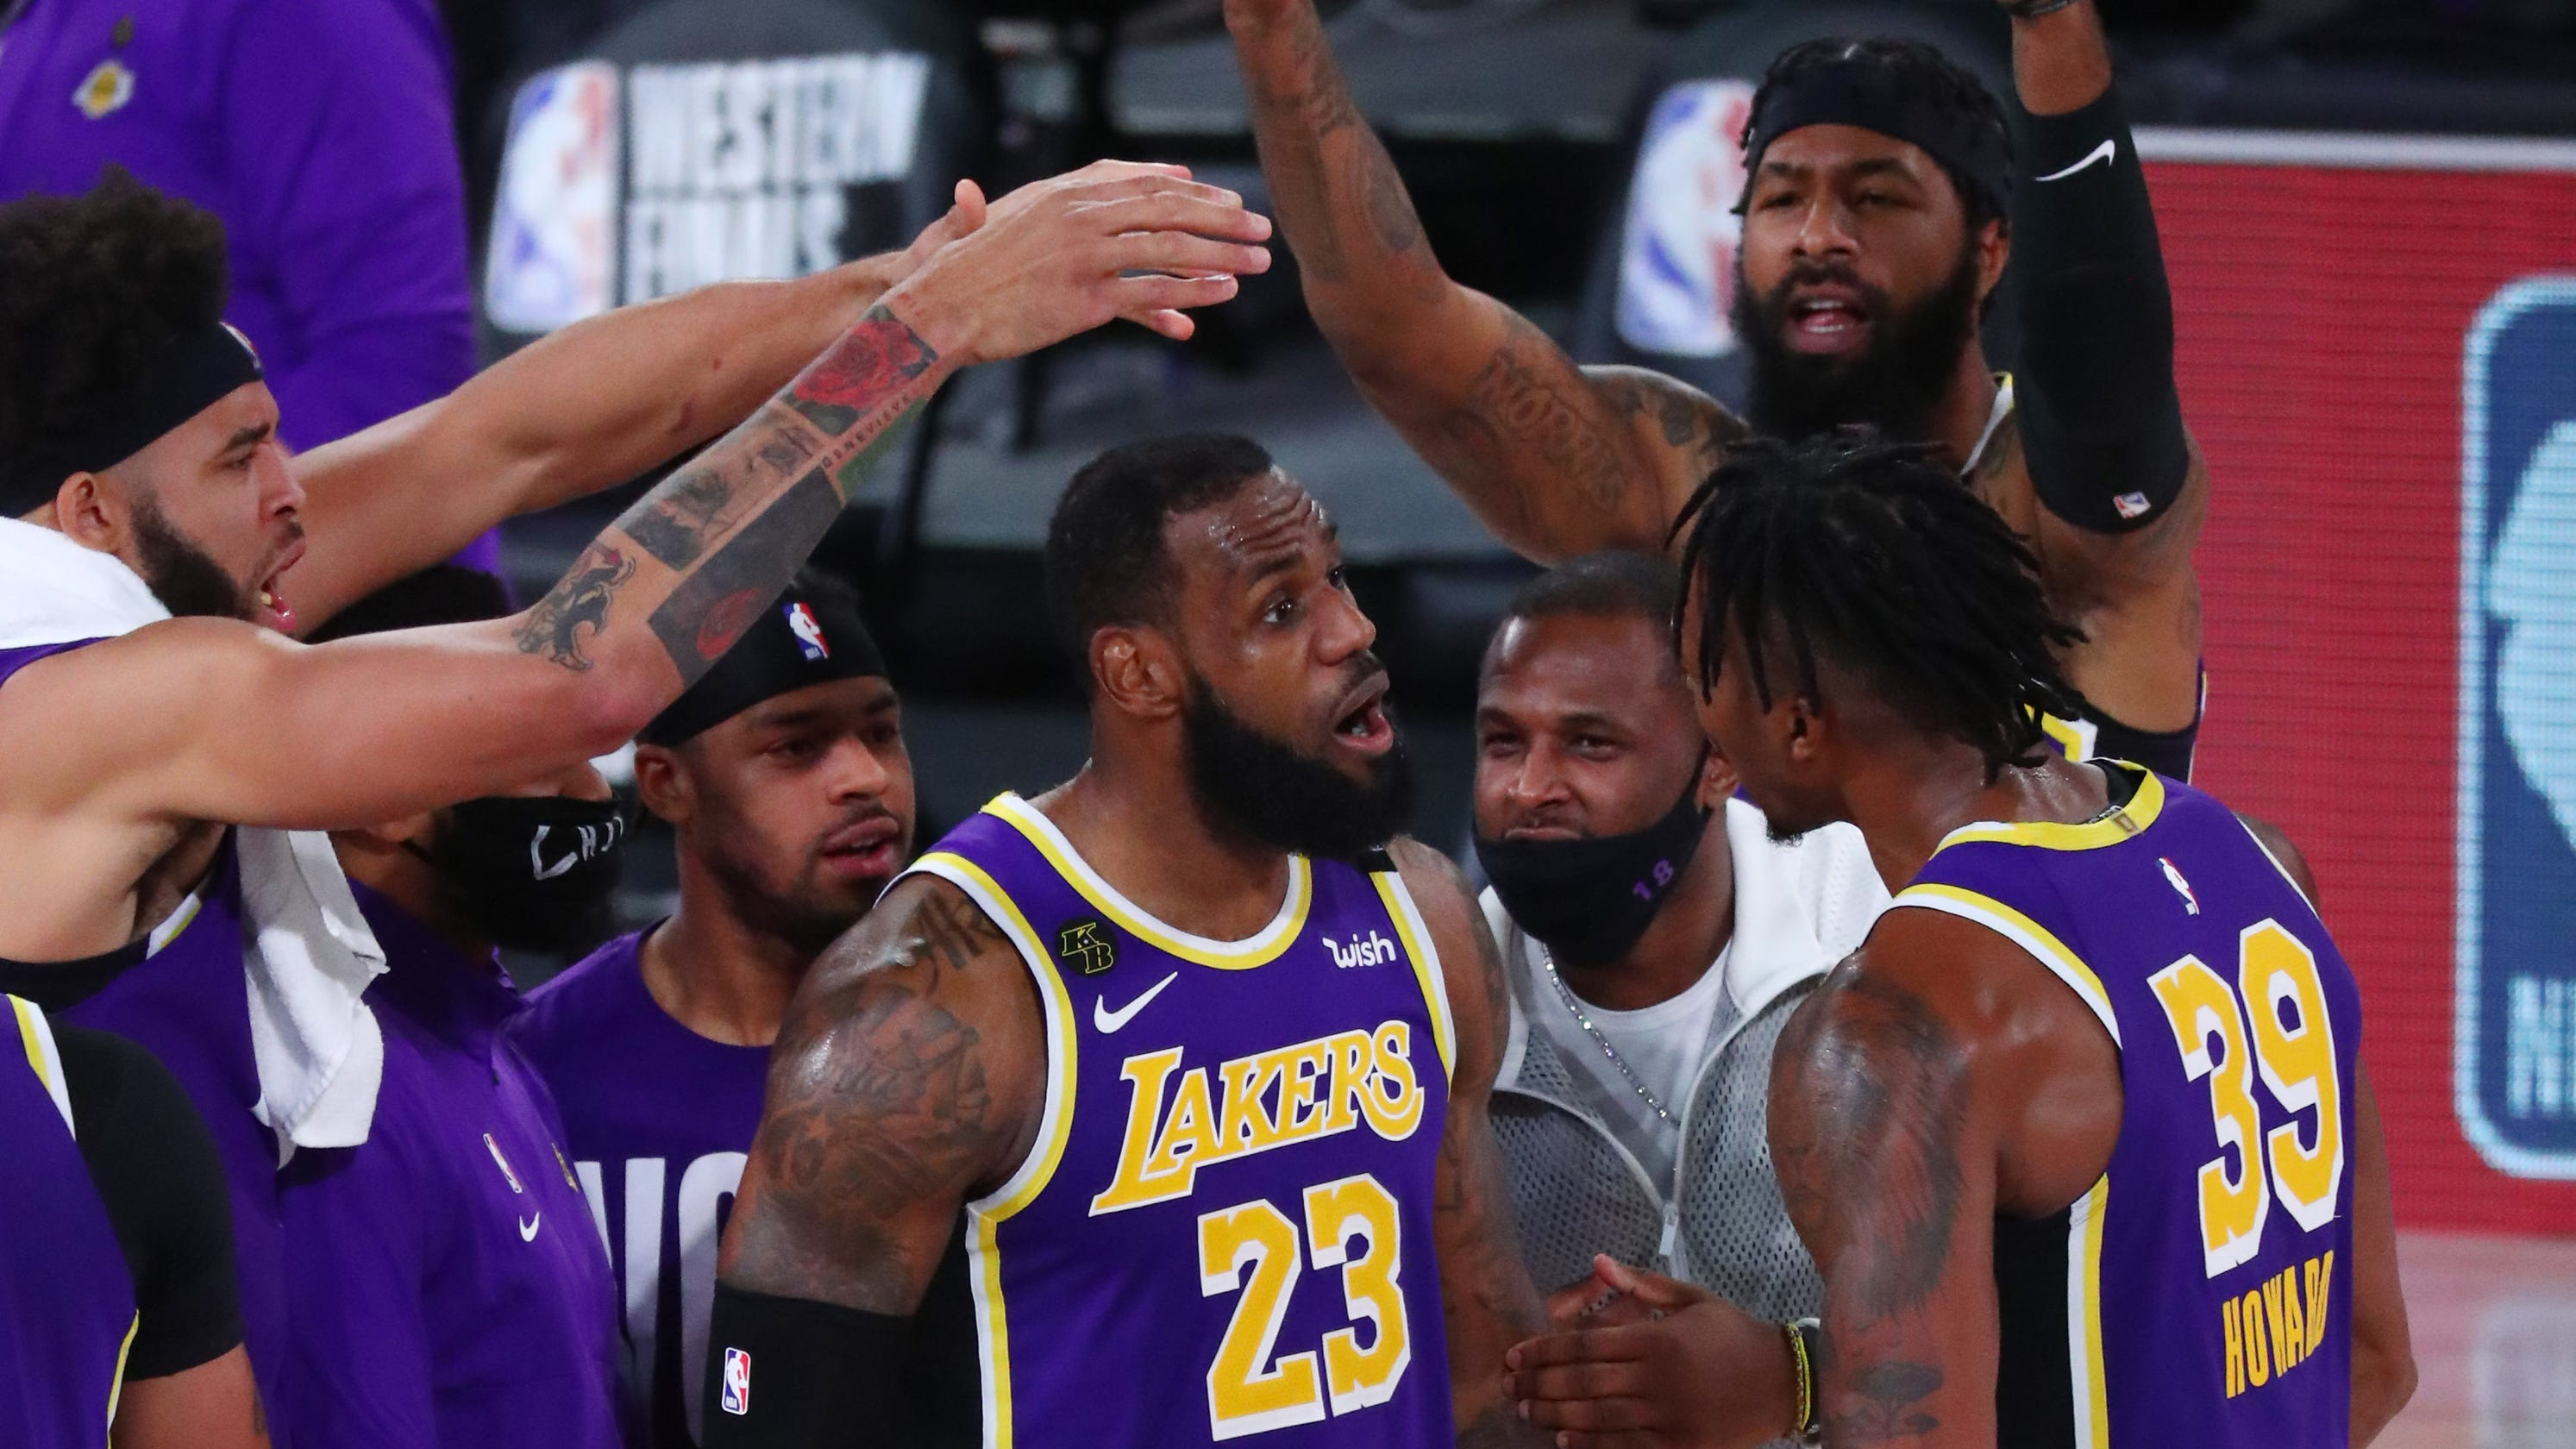 Lakers advance to NBA Finals as LeBron James has Game 5 triple-double